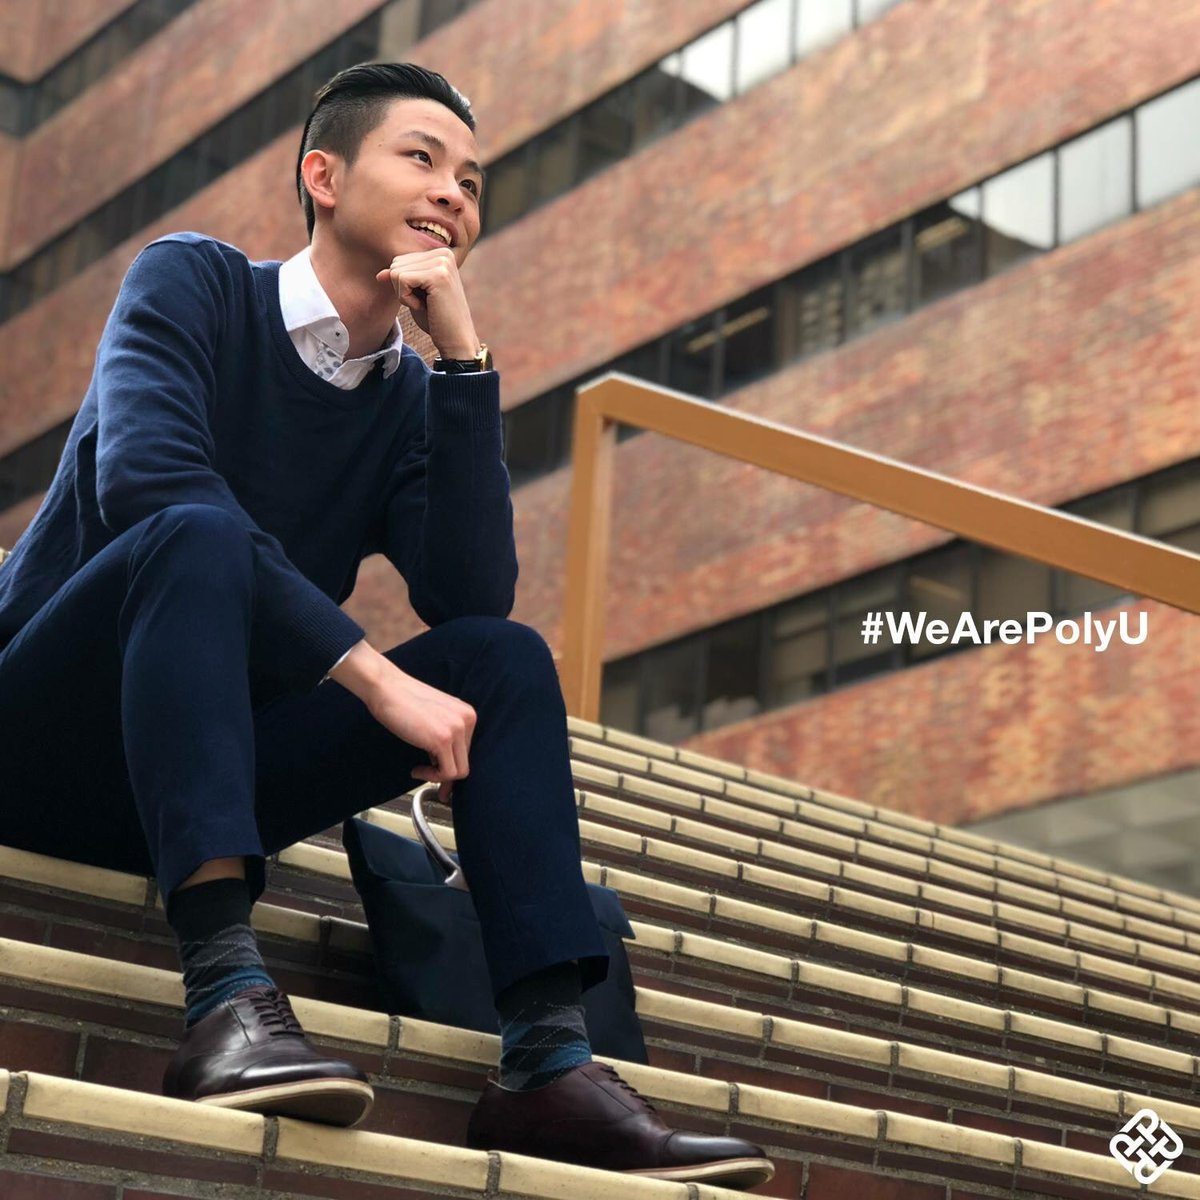 """#WeArePolyU - What drives you? """"I don't want any regrets in life. Even though there are obstacles, I won't give up & will do my best."""" After an unsatisfactory performance in the HKDSE, Paul studied hard & later received offers... https://t.co/nQt2dSHfDp #PolyUStudent @PolyU_FB https://t.co/jGRqlX8pjT"""